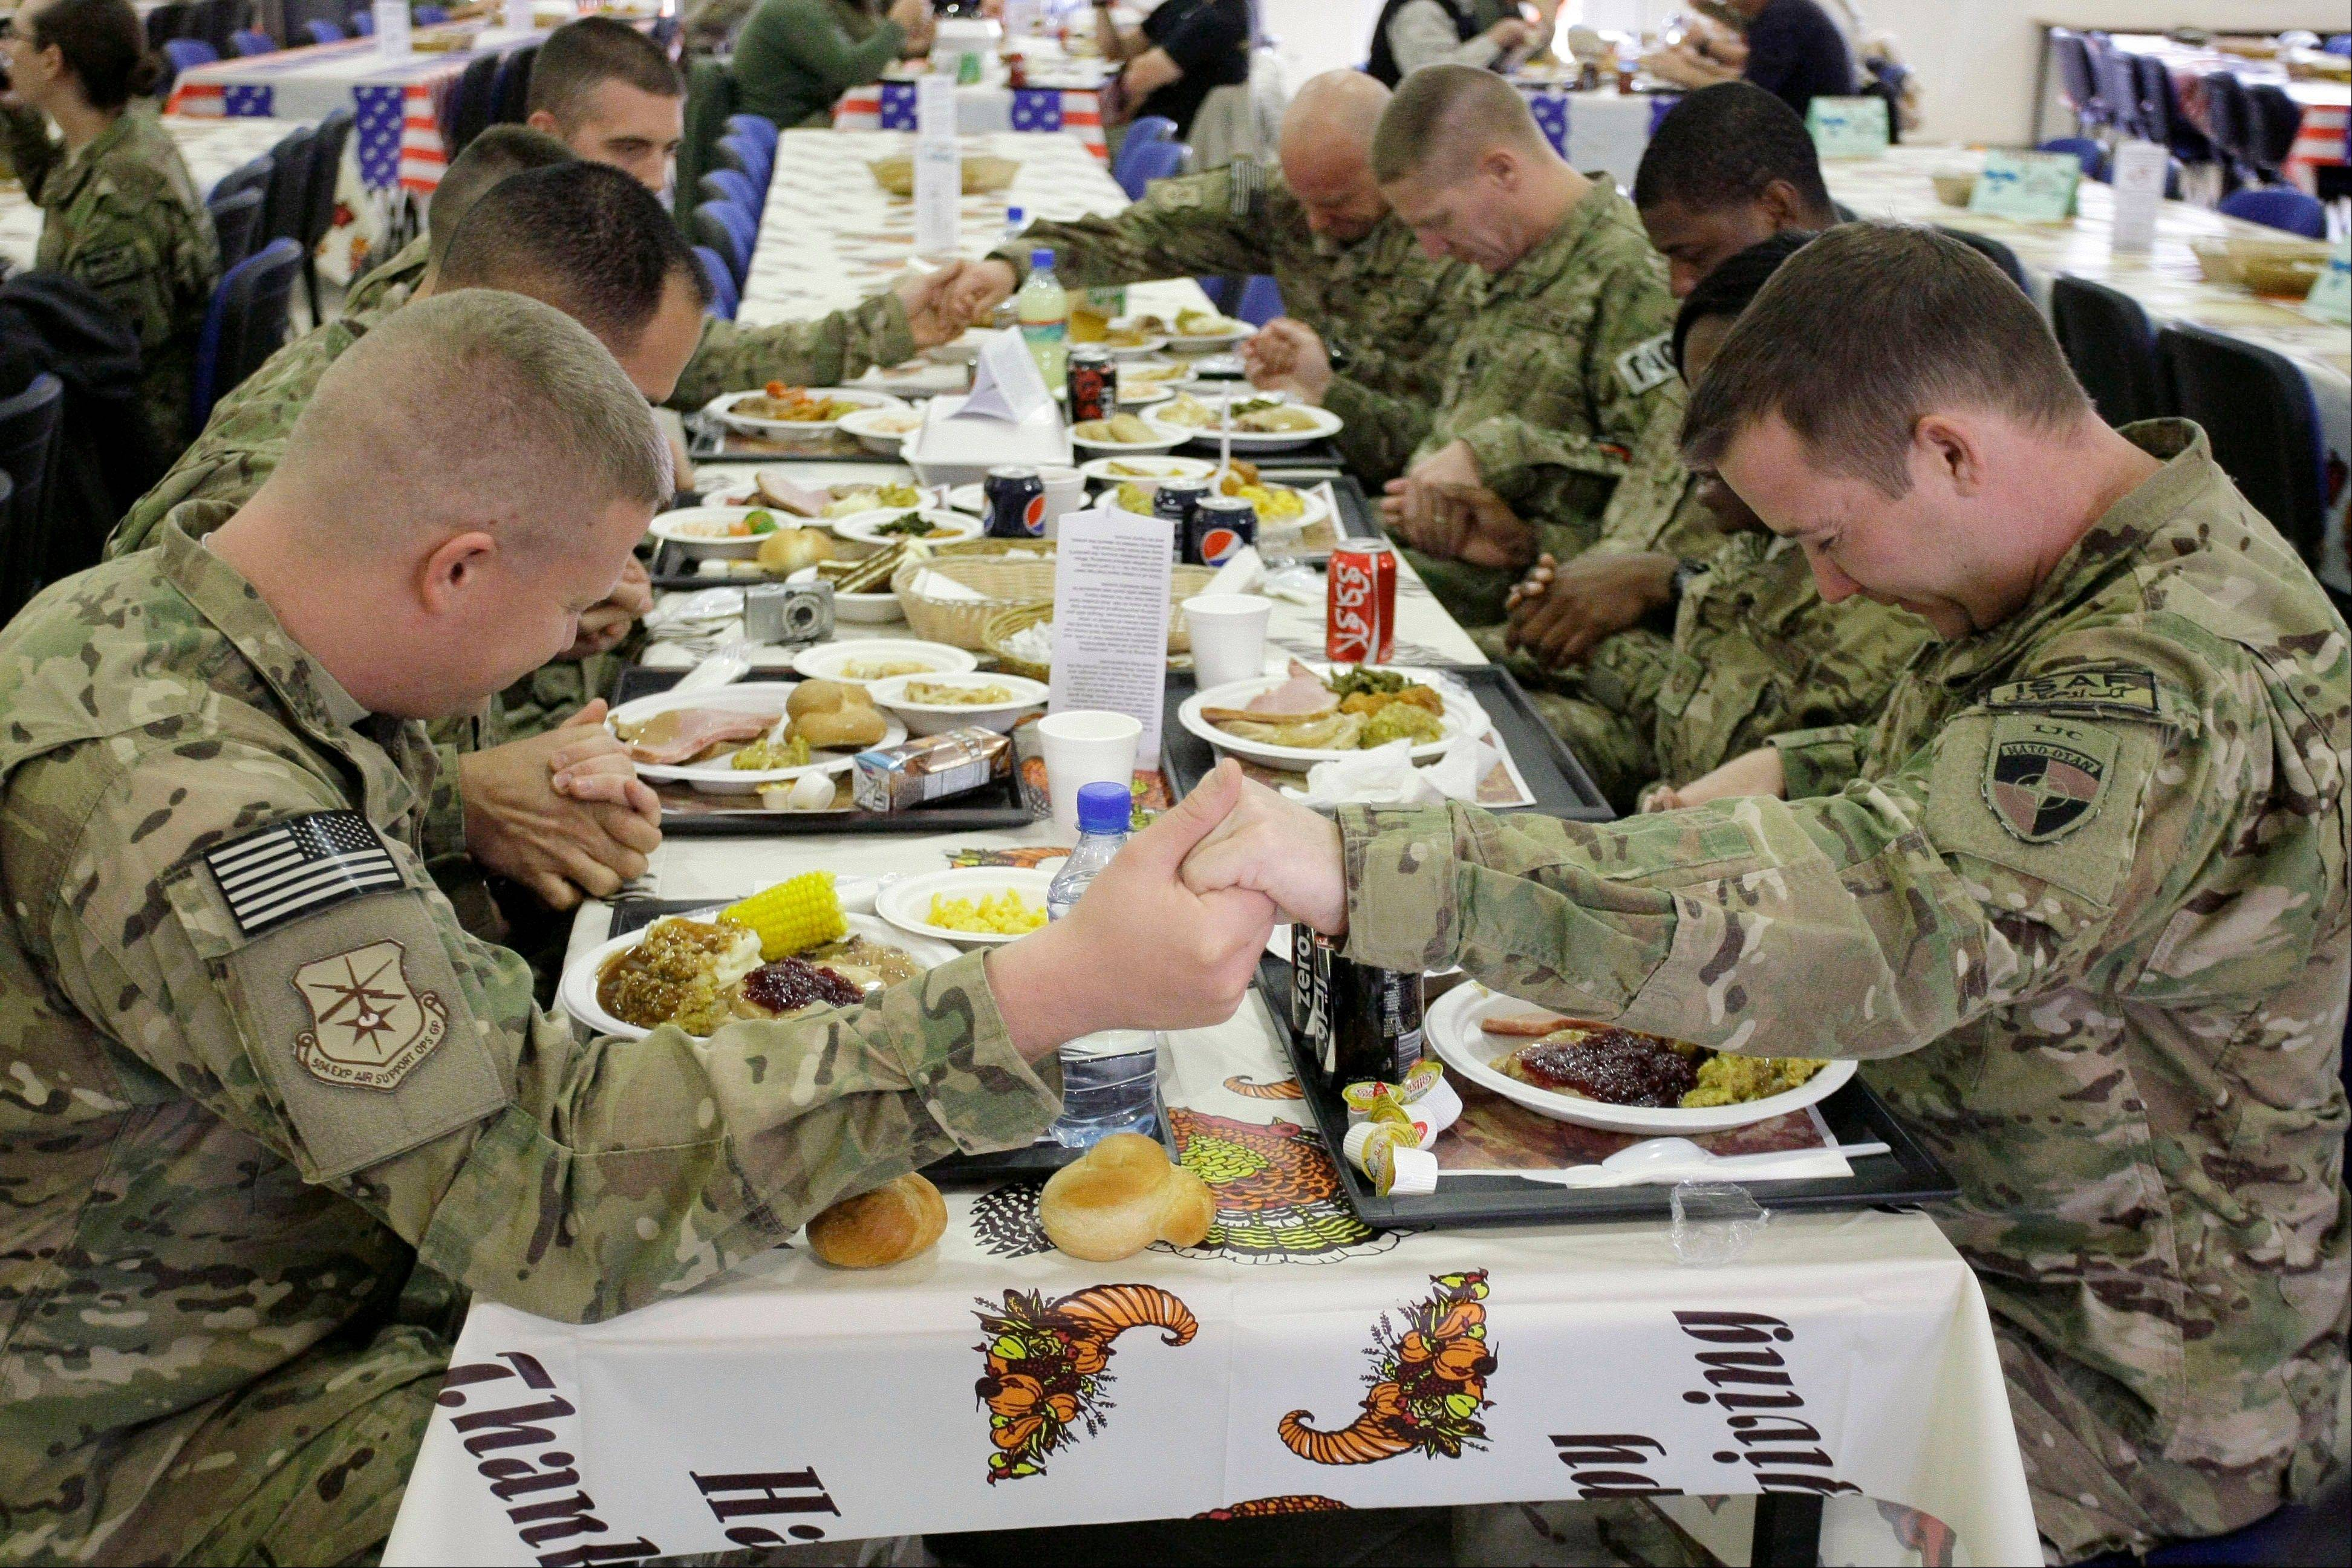 U.S. soldiers pray before eating a Thanksgiving meal at a dining hall at the U.S.-led coalition base in Kabul, Afghanistan, Thursday, Nov. 22, 2012. The dining hall at the U.S.-led coalition base in the Afghan capital served up mac-and-cheese along with traditional Thanksgiving Day fixings.